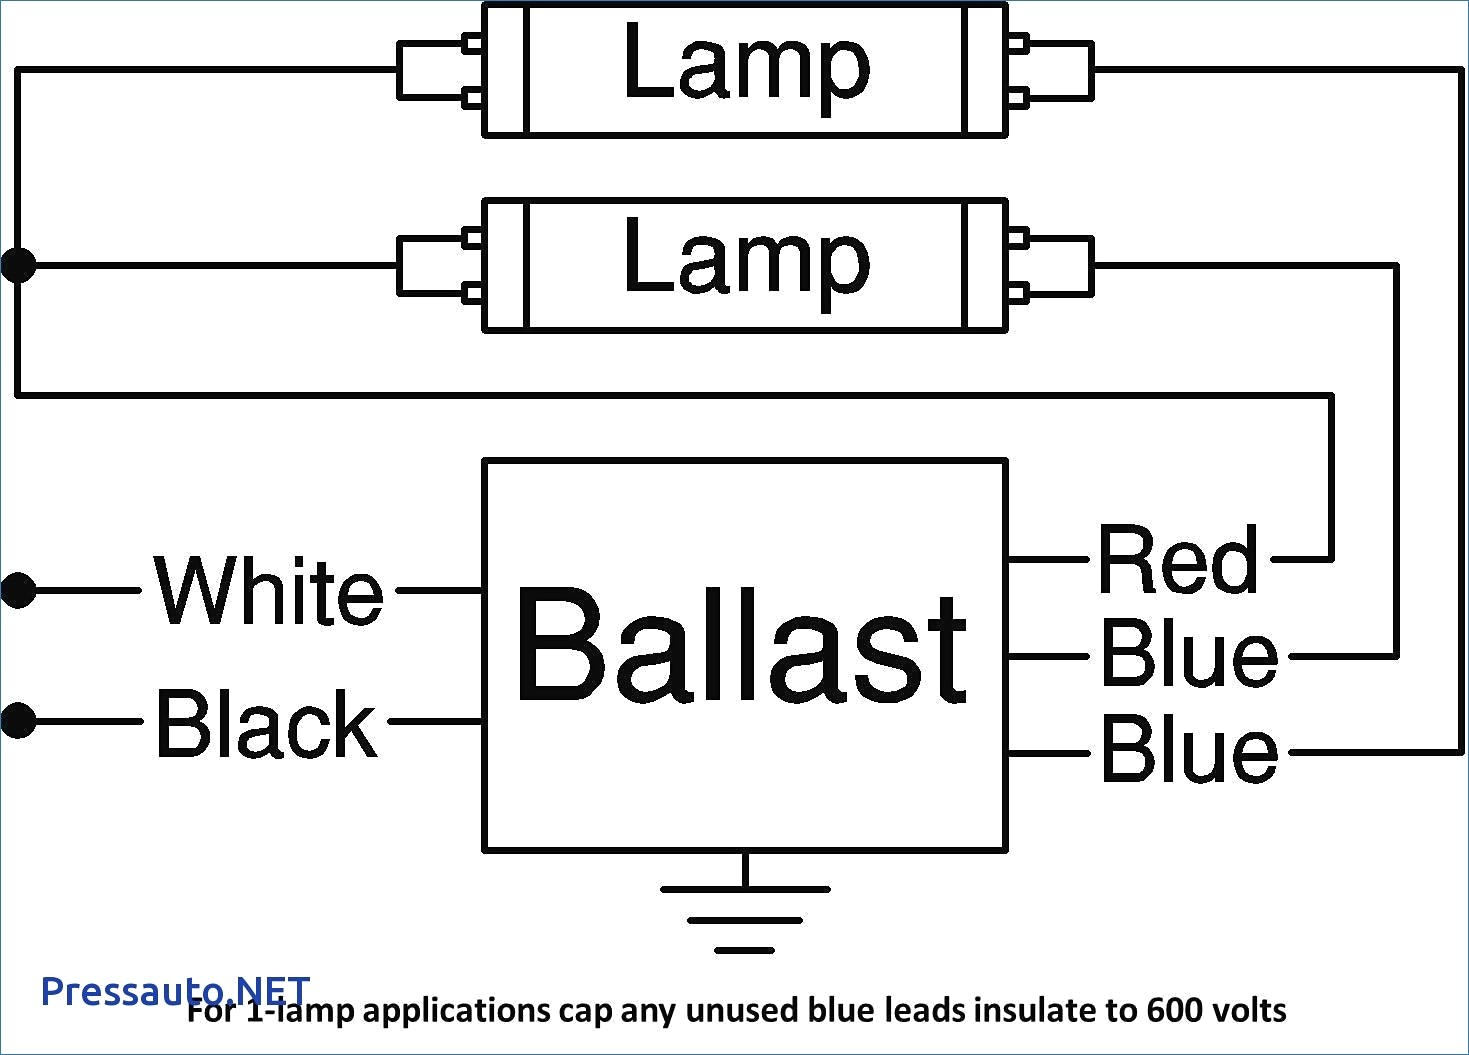 Lamp Wiring Diagram